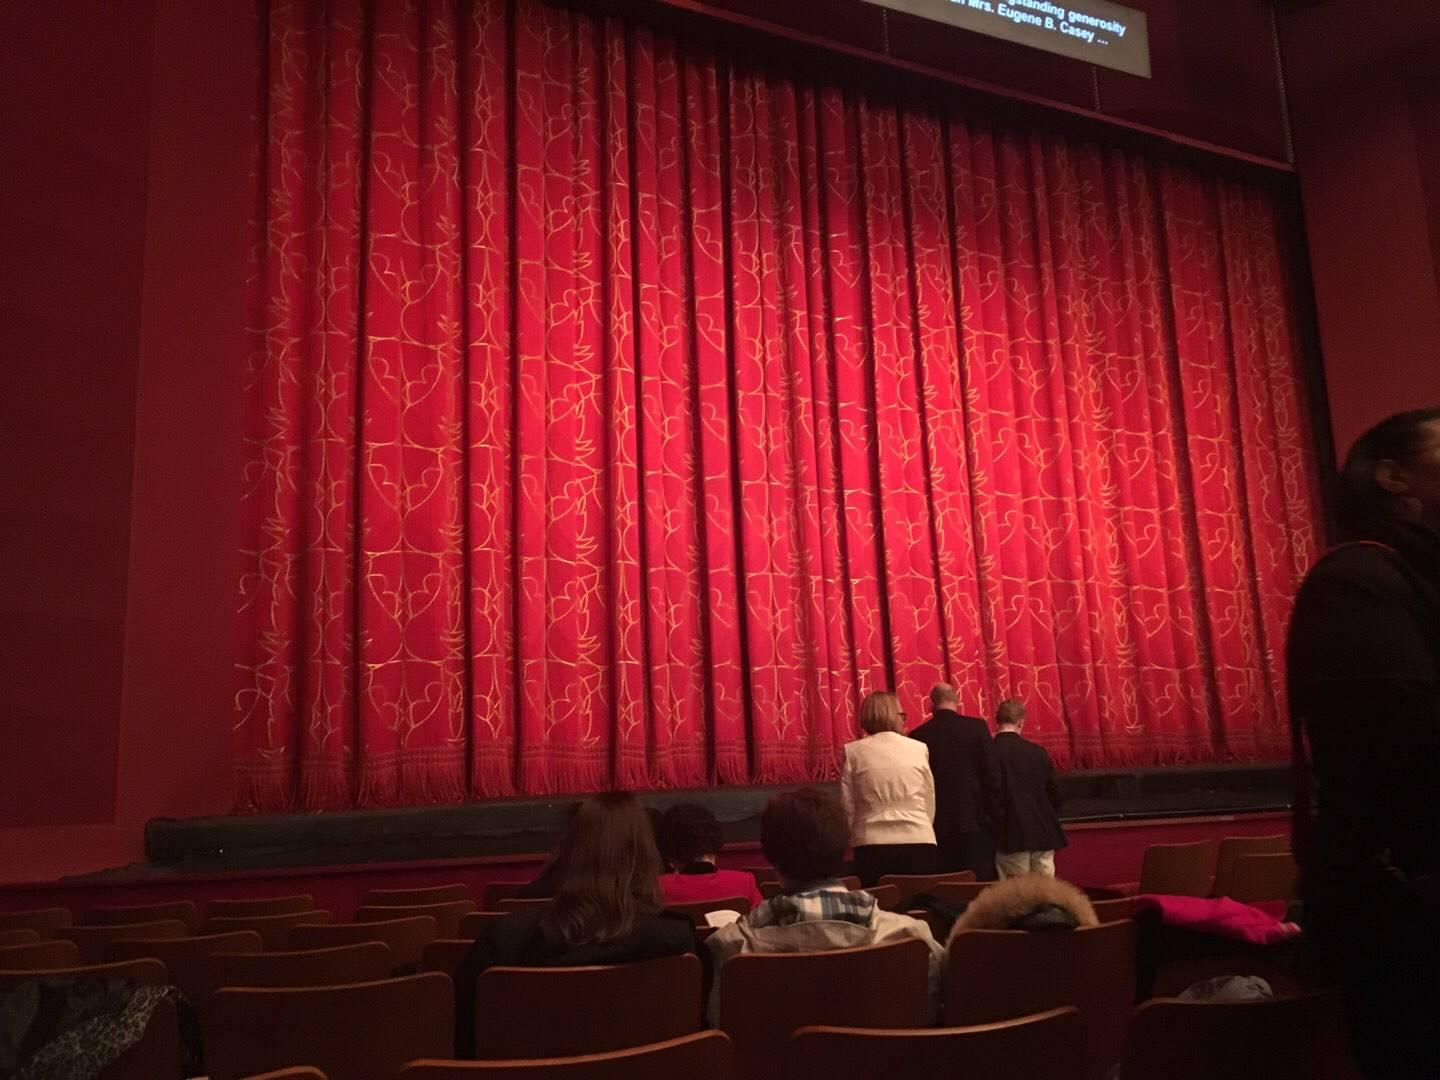 The Kennedy Center Opera House Section Orch Row P Seat 7